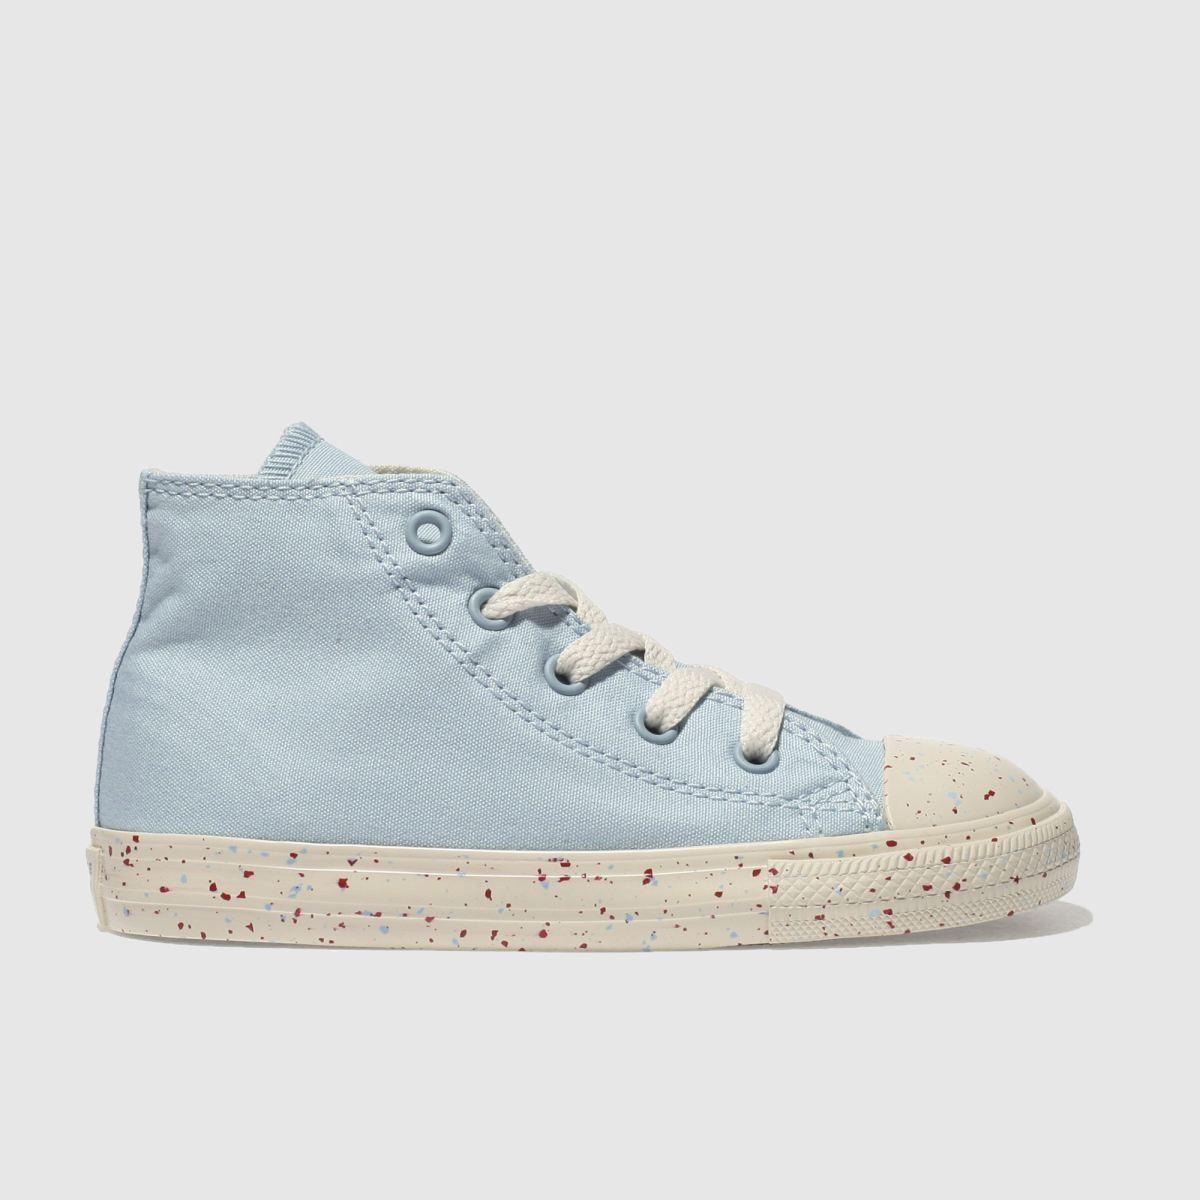 Converse Pale Blue Chuck Taylor All Star Hi Toddler Trainers